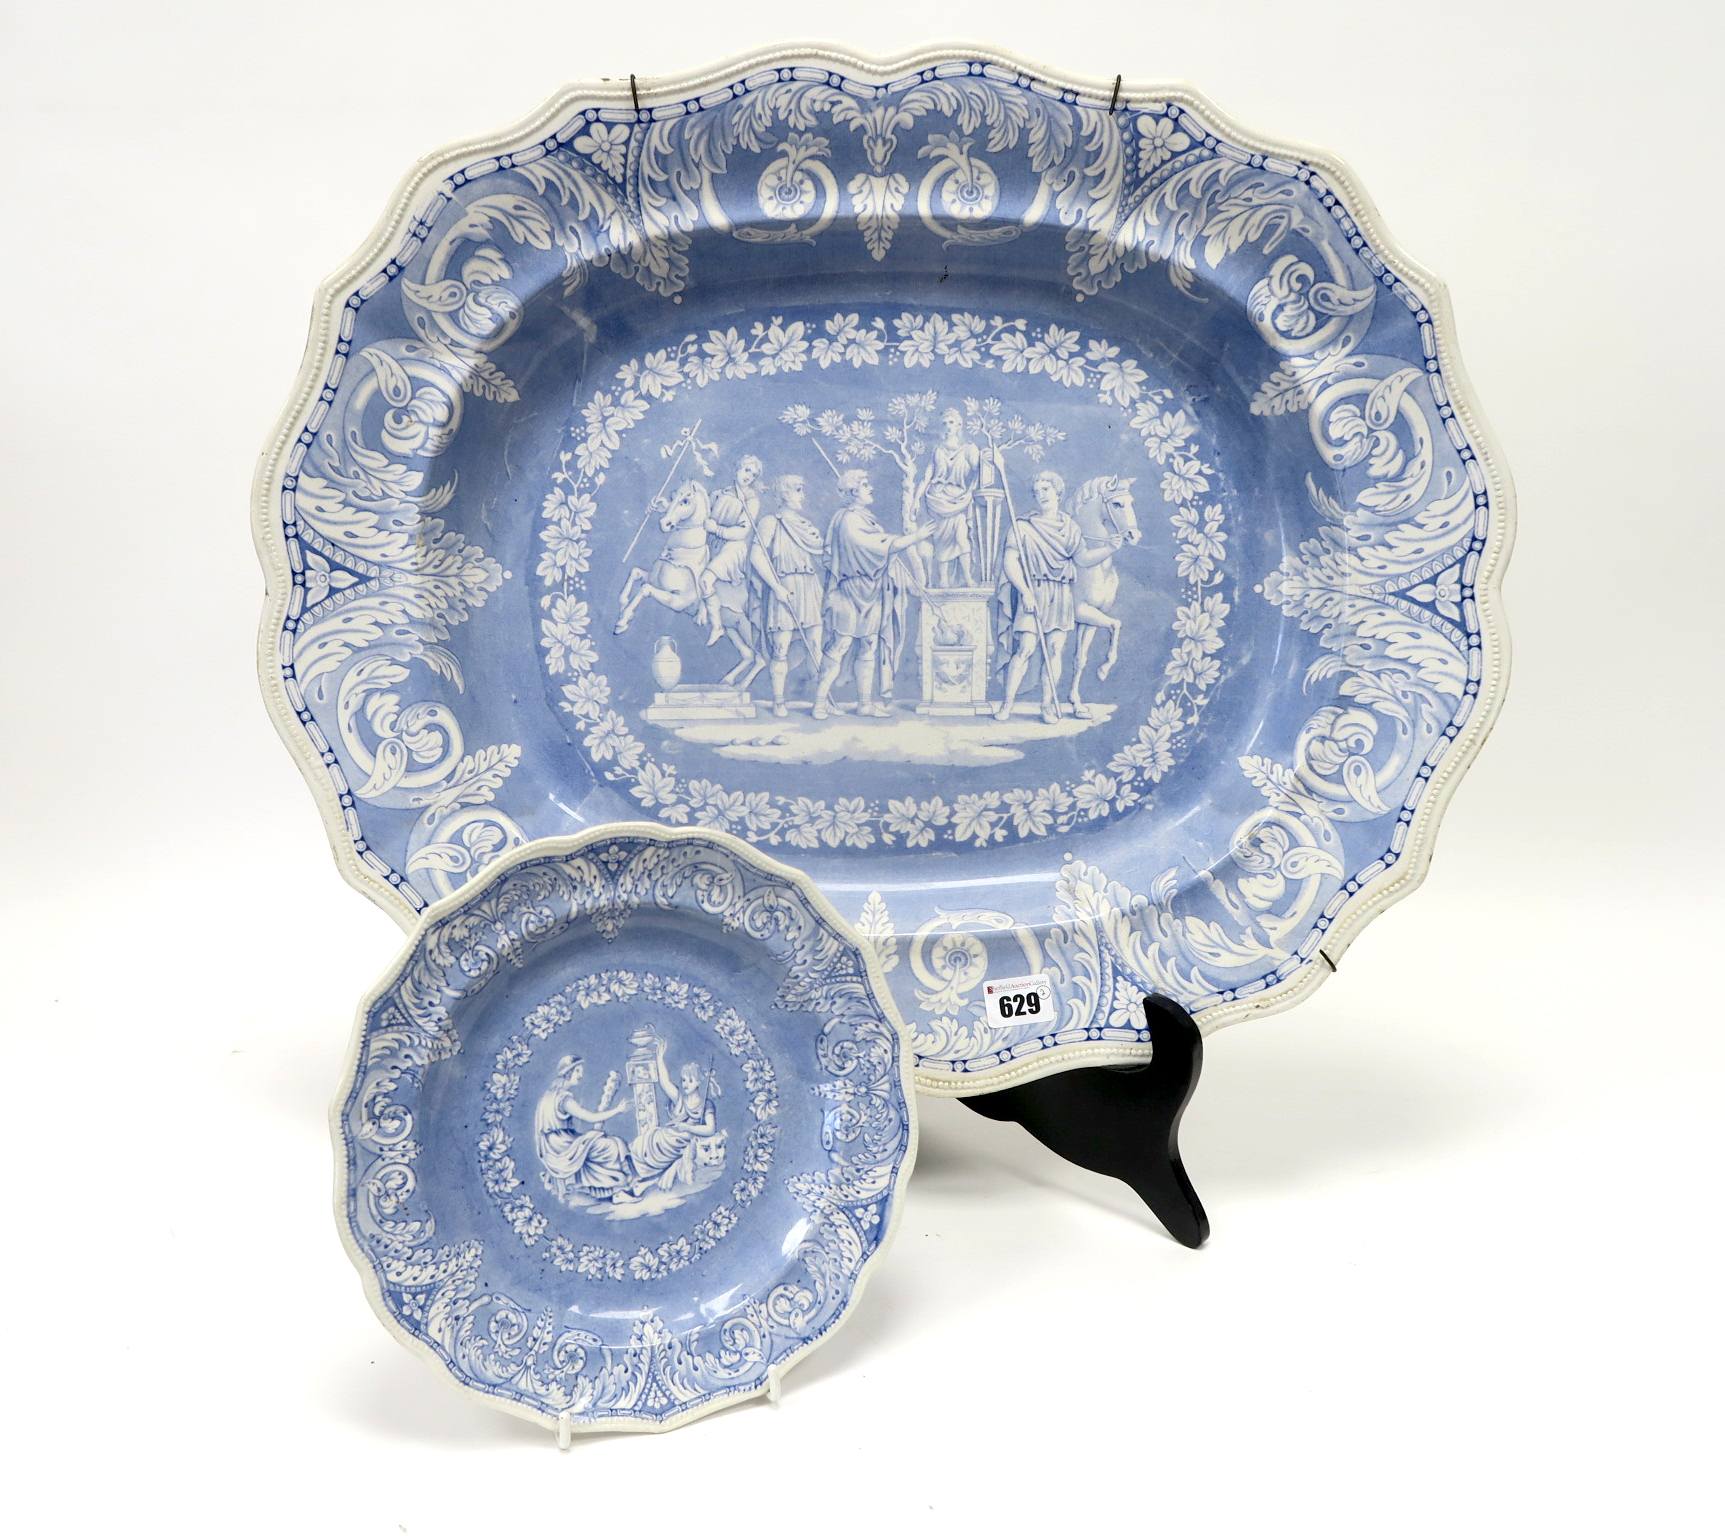 Lot 629 - An Elkin Knight & Co. Pottery Meat Dish, of shaped oval form decorated in blue with the 'Etruscan'